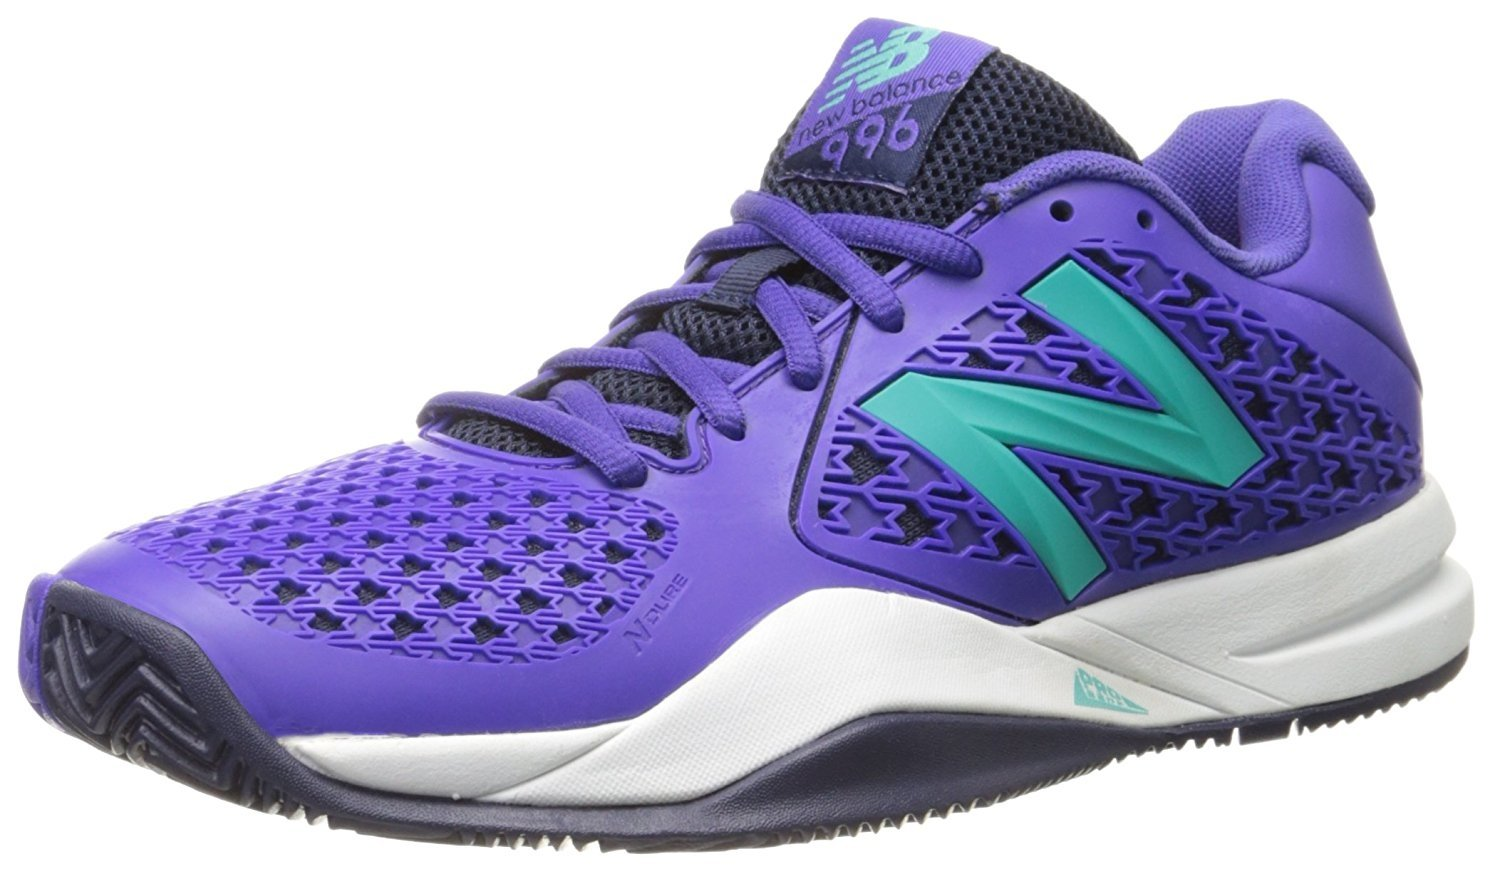 new product 565b7 97db8 Details about New Balance Women s 996v2 Lightweight Tennis Shoe